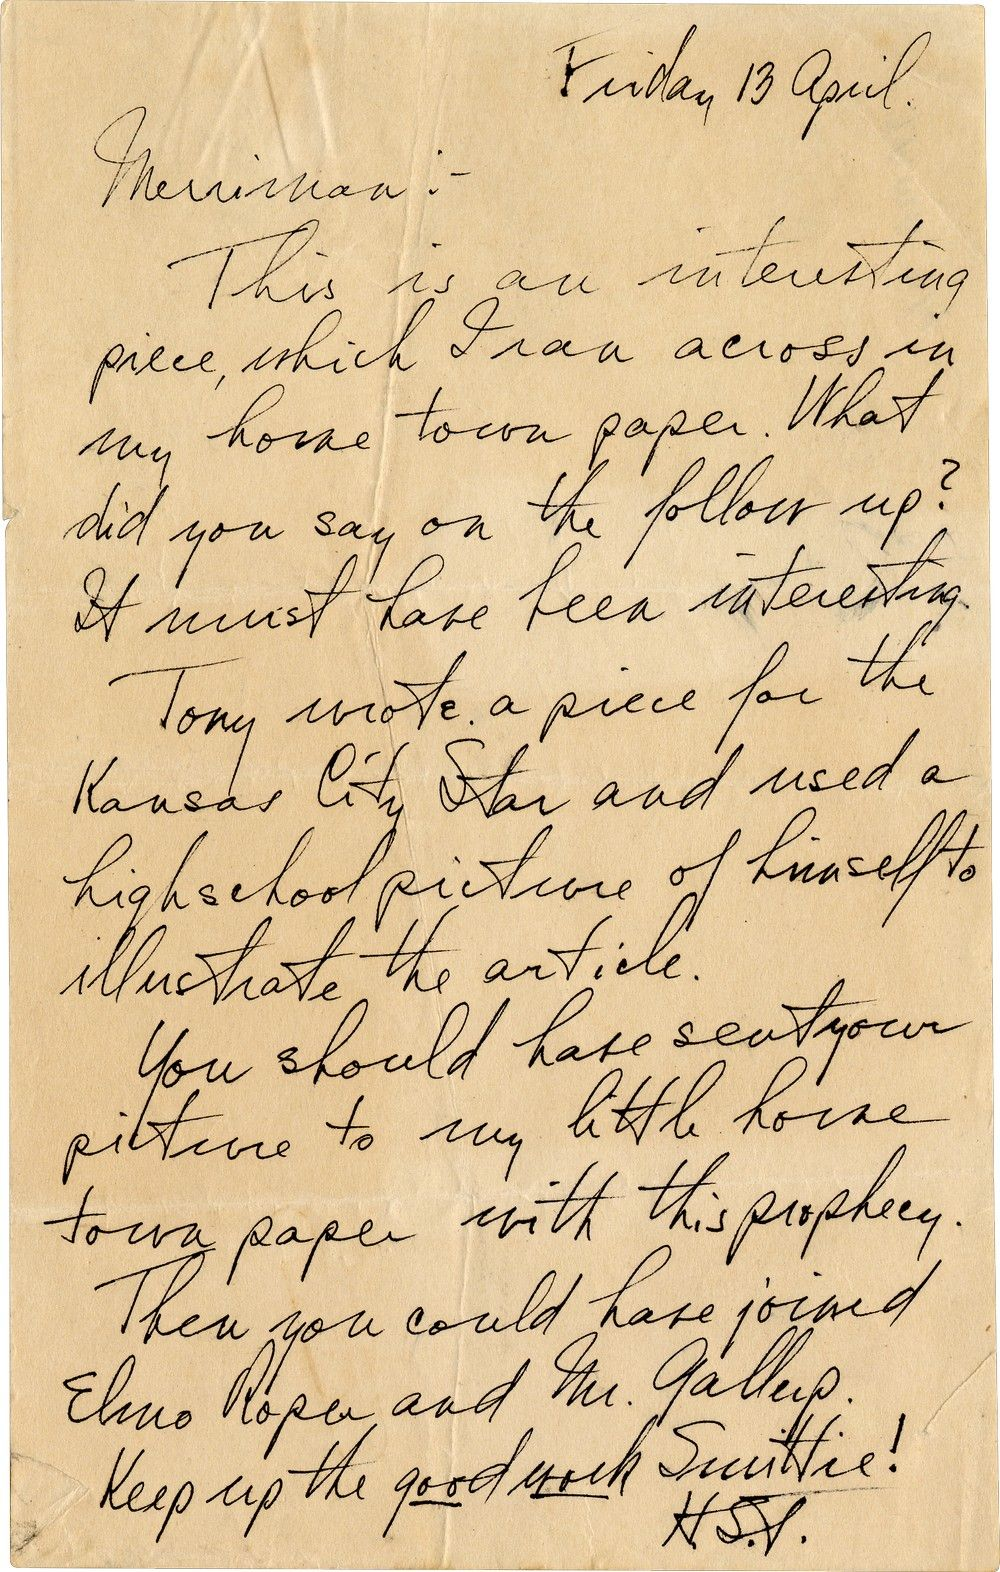 Two Days After Unleashing a Tempest by Firing MacArthur, President Truman Writes to a Journalist